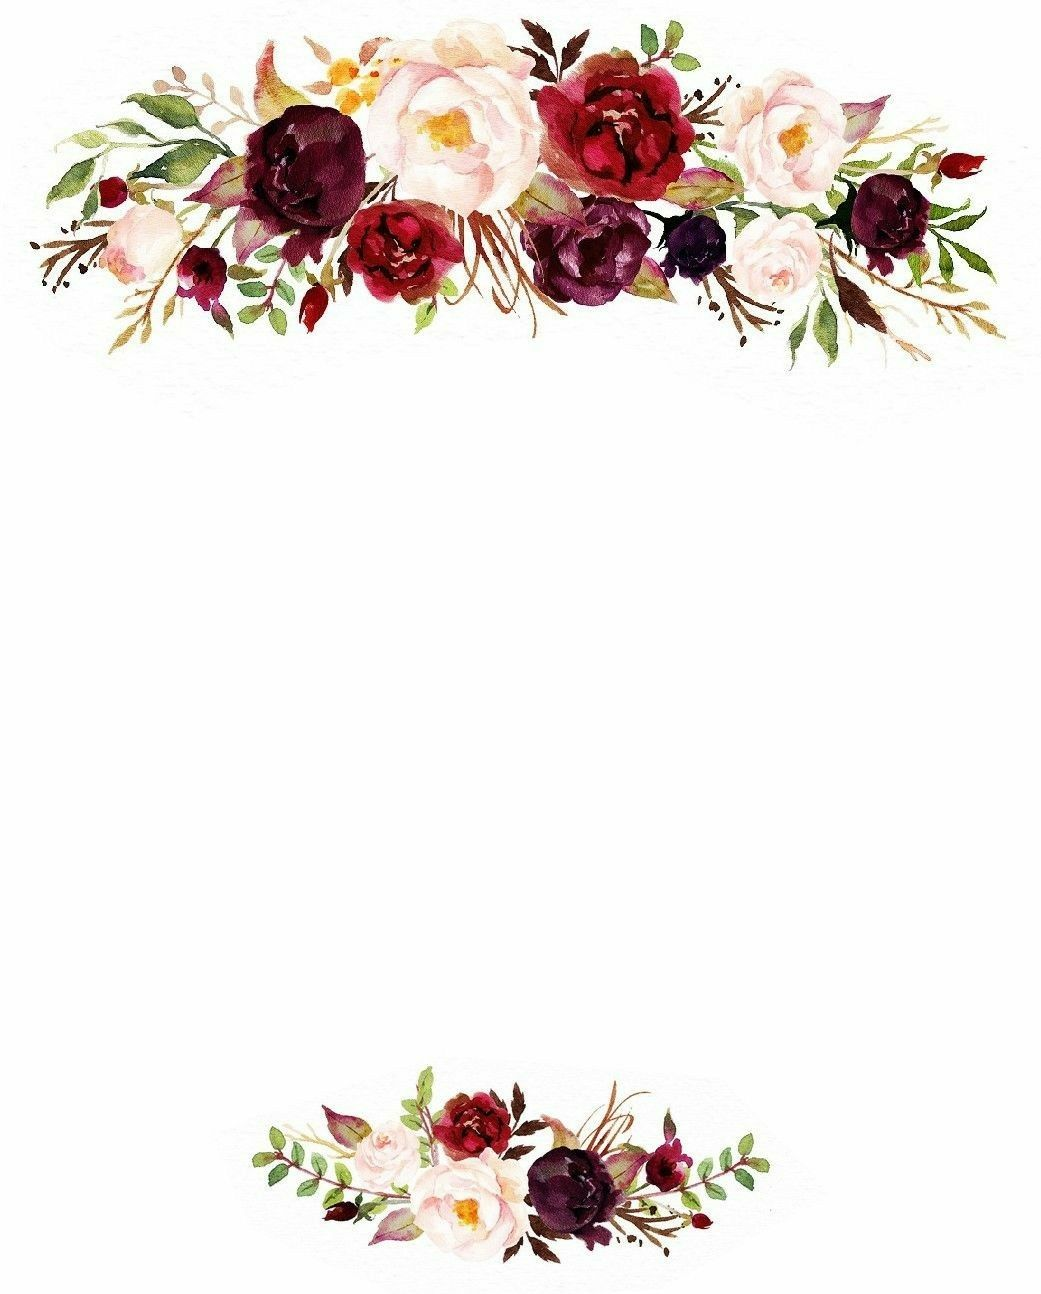 Pin by Jacilyn Bruns on BODAS Y MAS Flower backgrounds